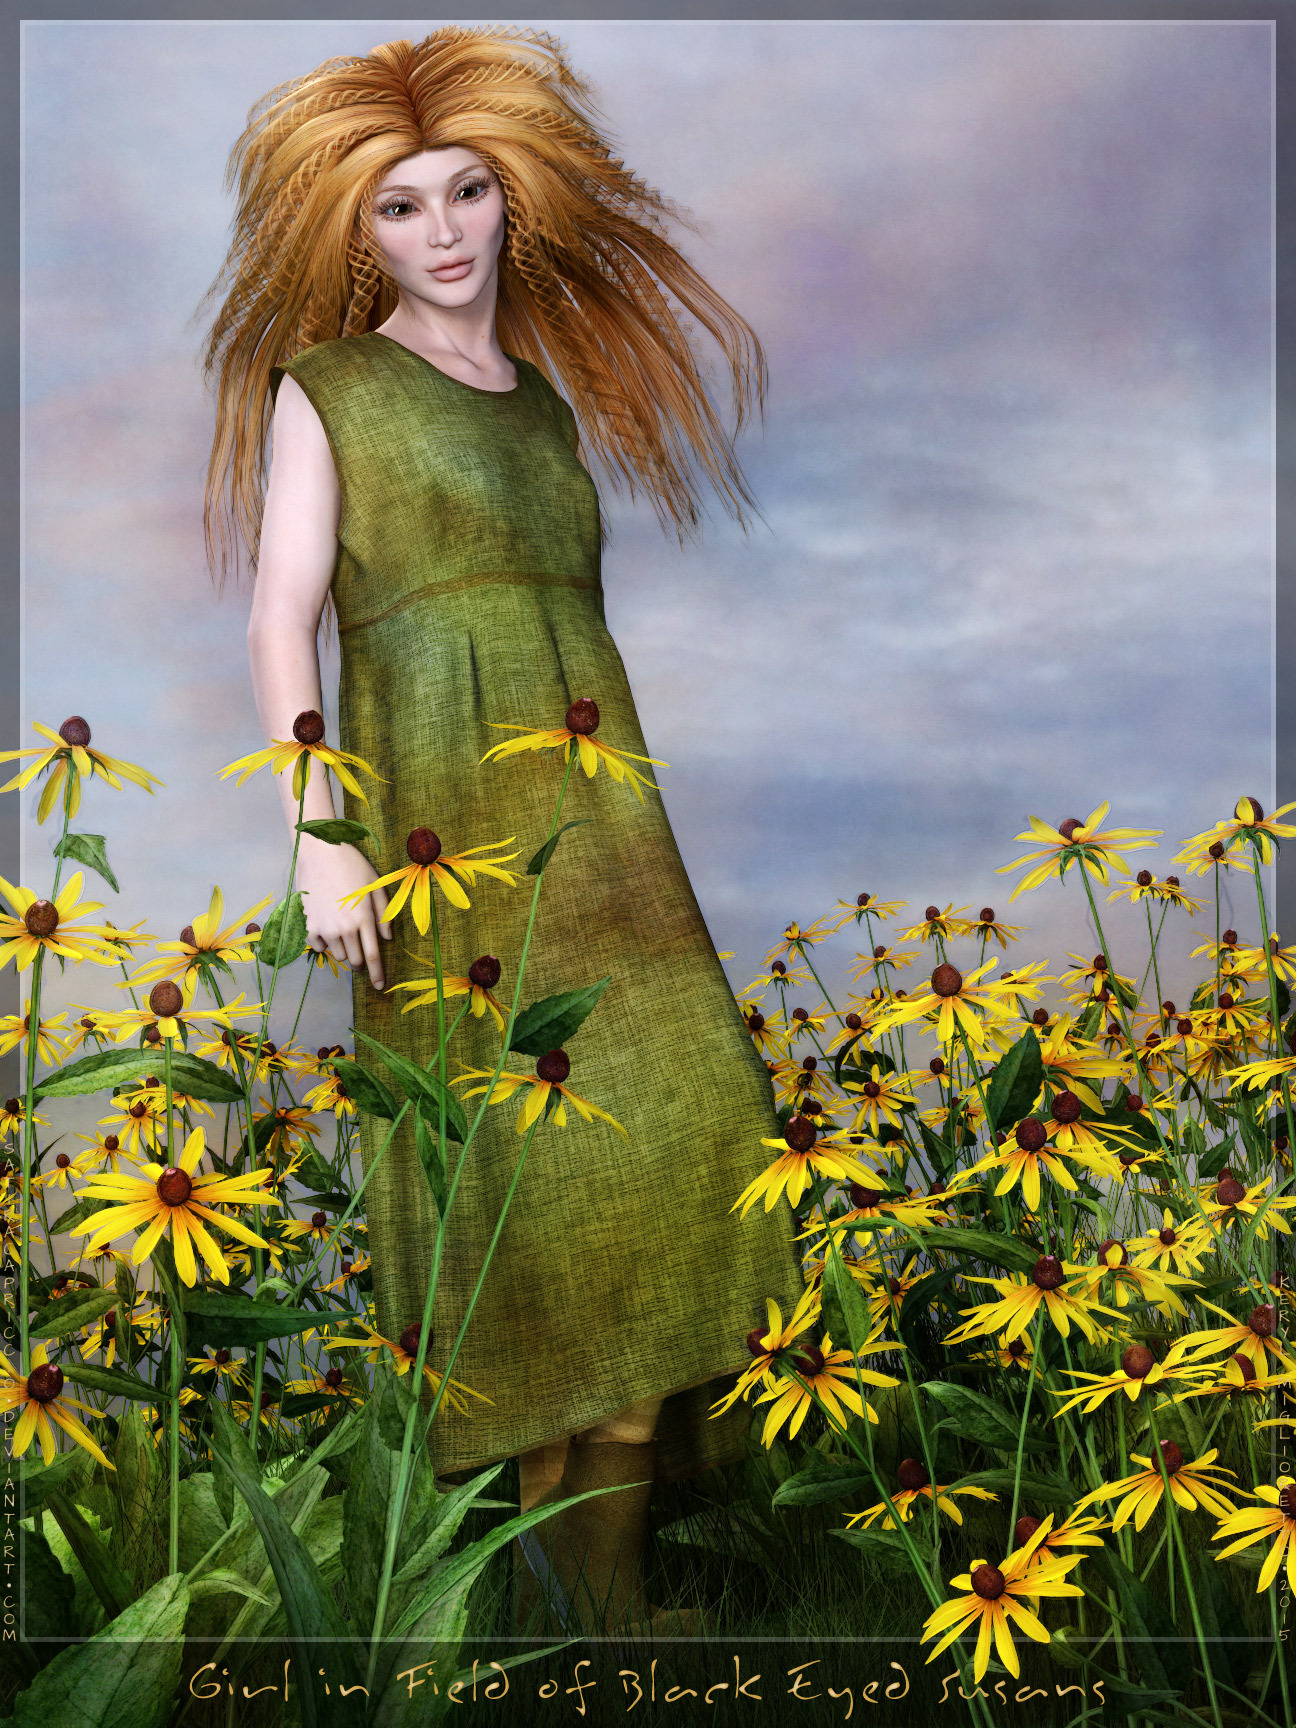 Girl in Field of Black Eyed Susans by SatiraCapriccio